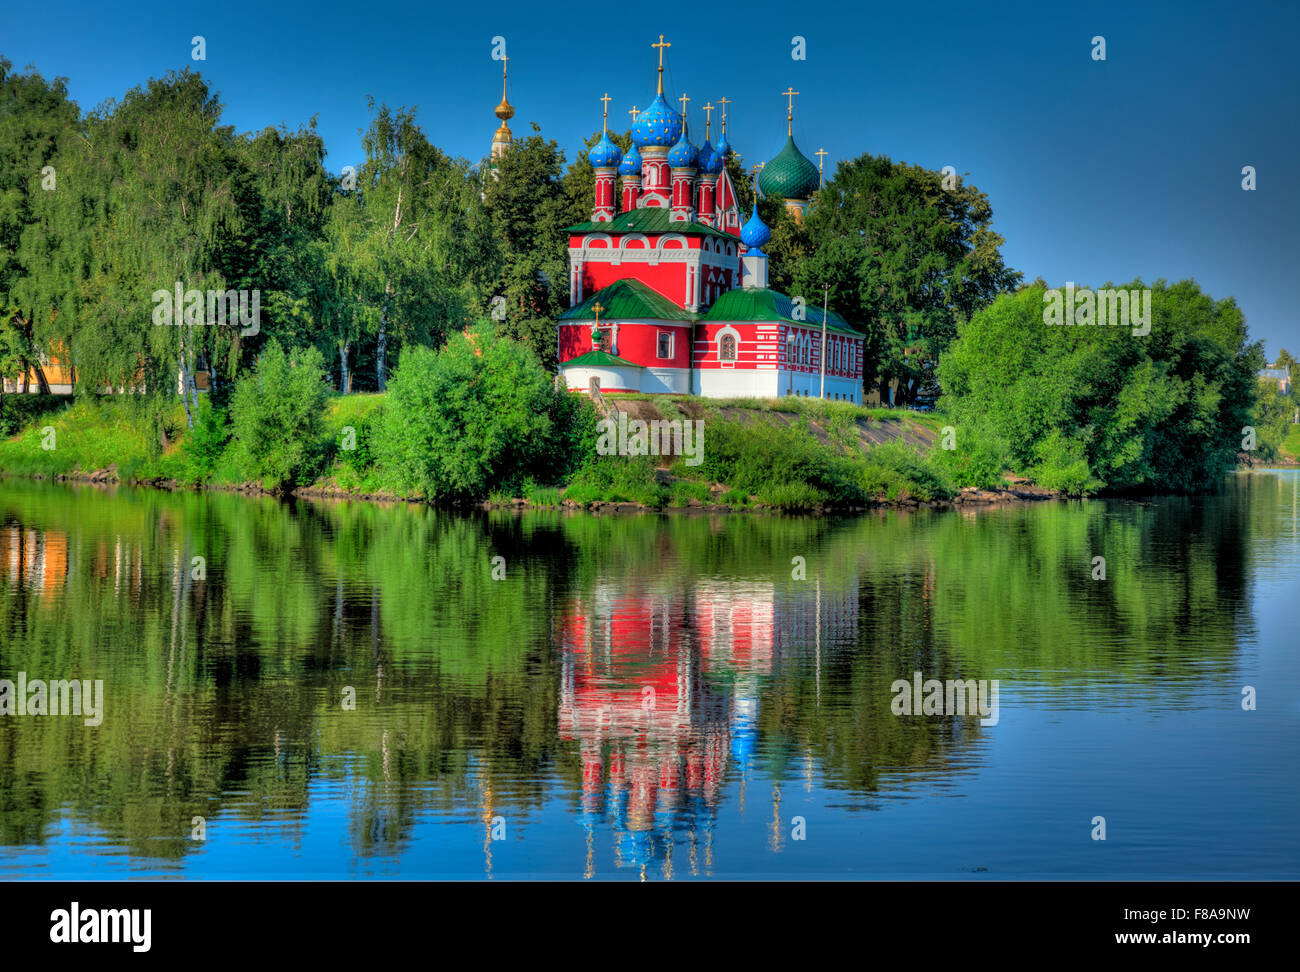 Church of Saint Dmitry on the Blood, Uglich, Russian Federation, Volga River, Built 1692 - Stock Image